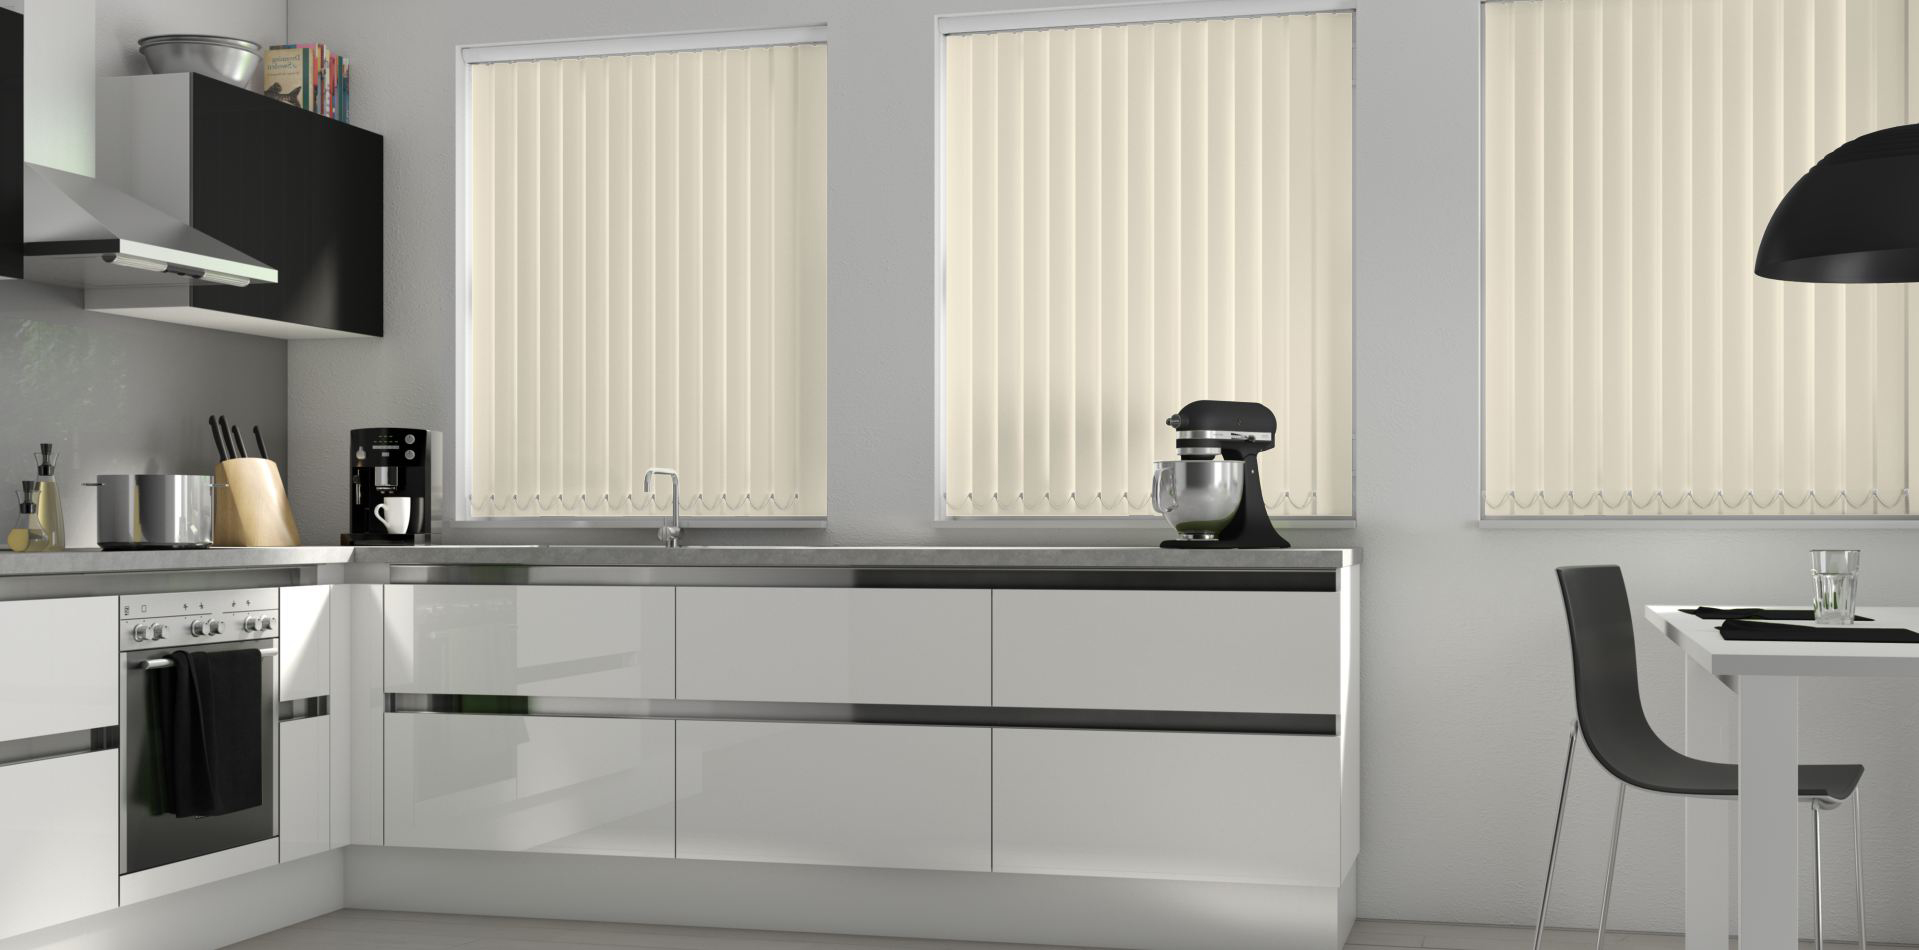 Three Guardian Cream Vertical blinds in a kitchen